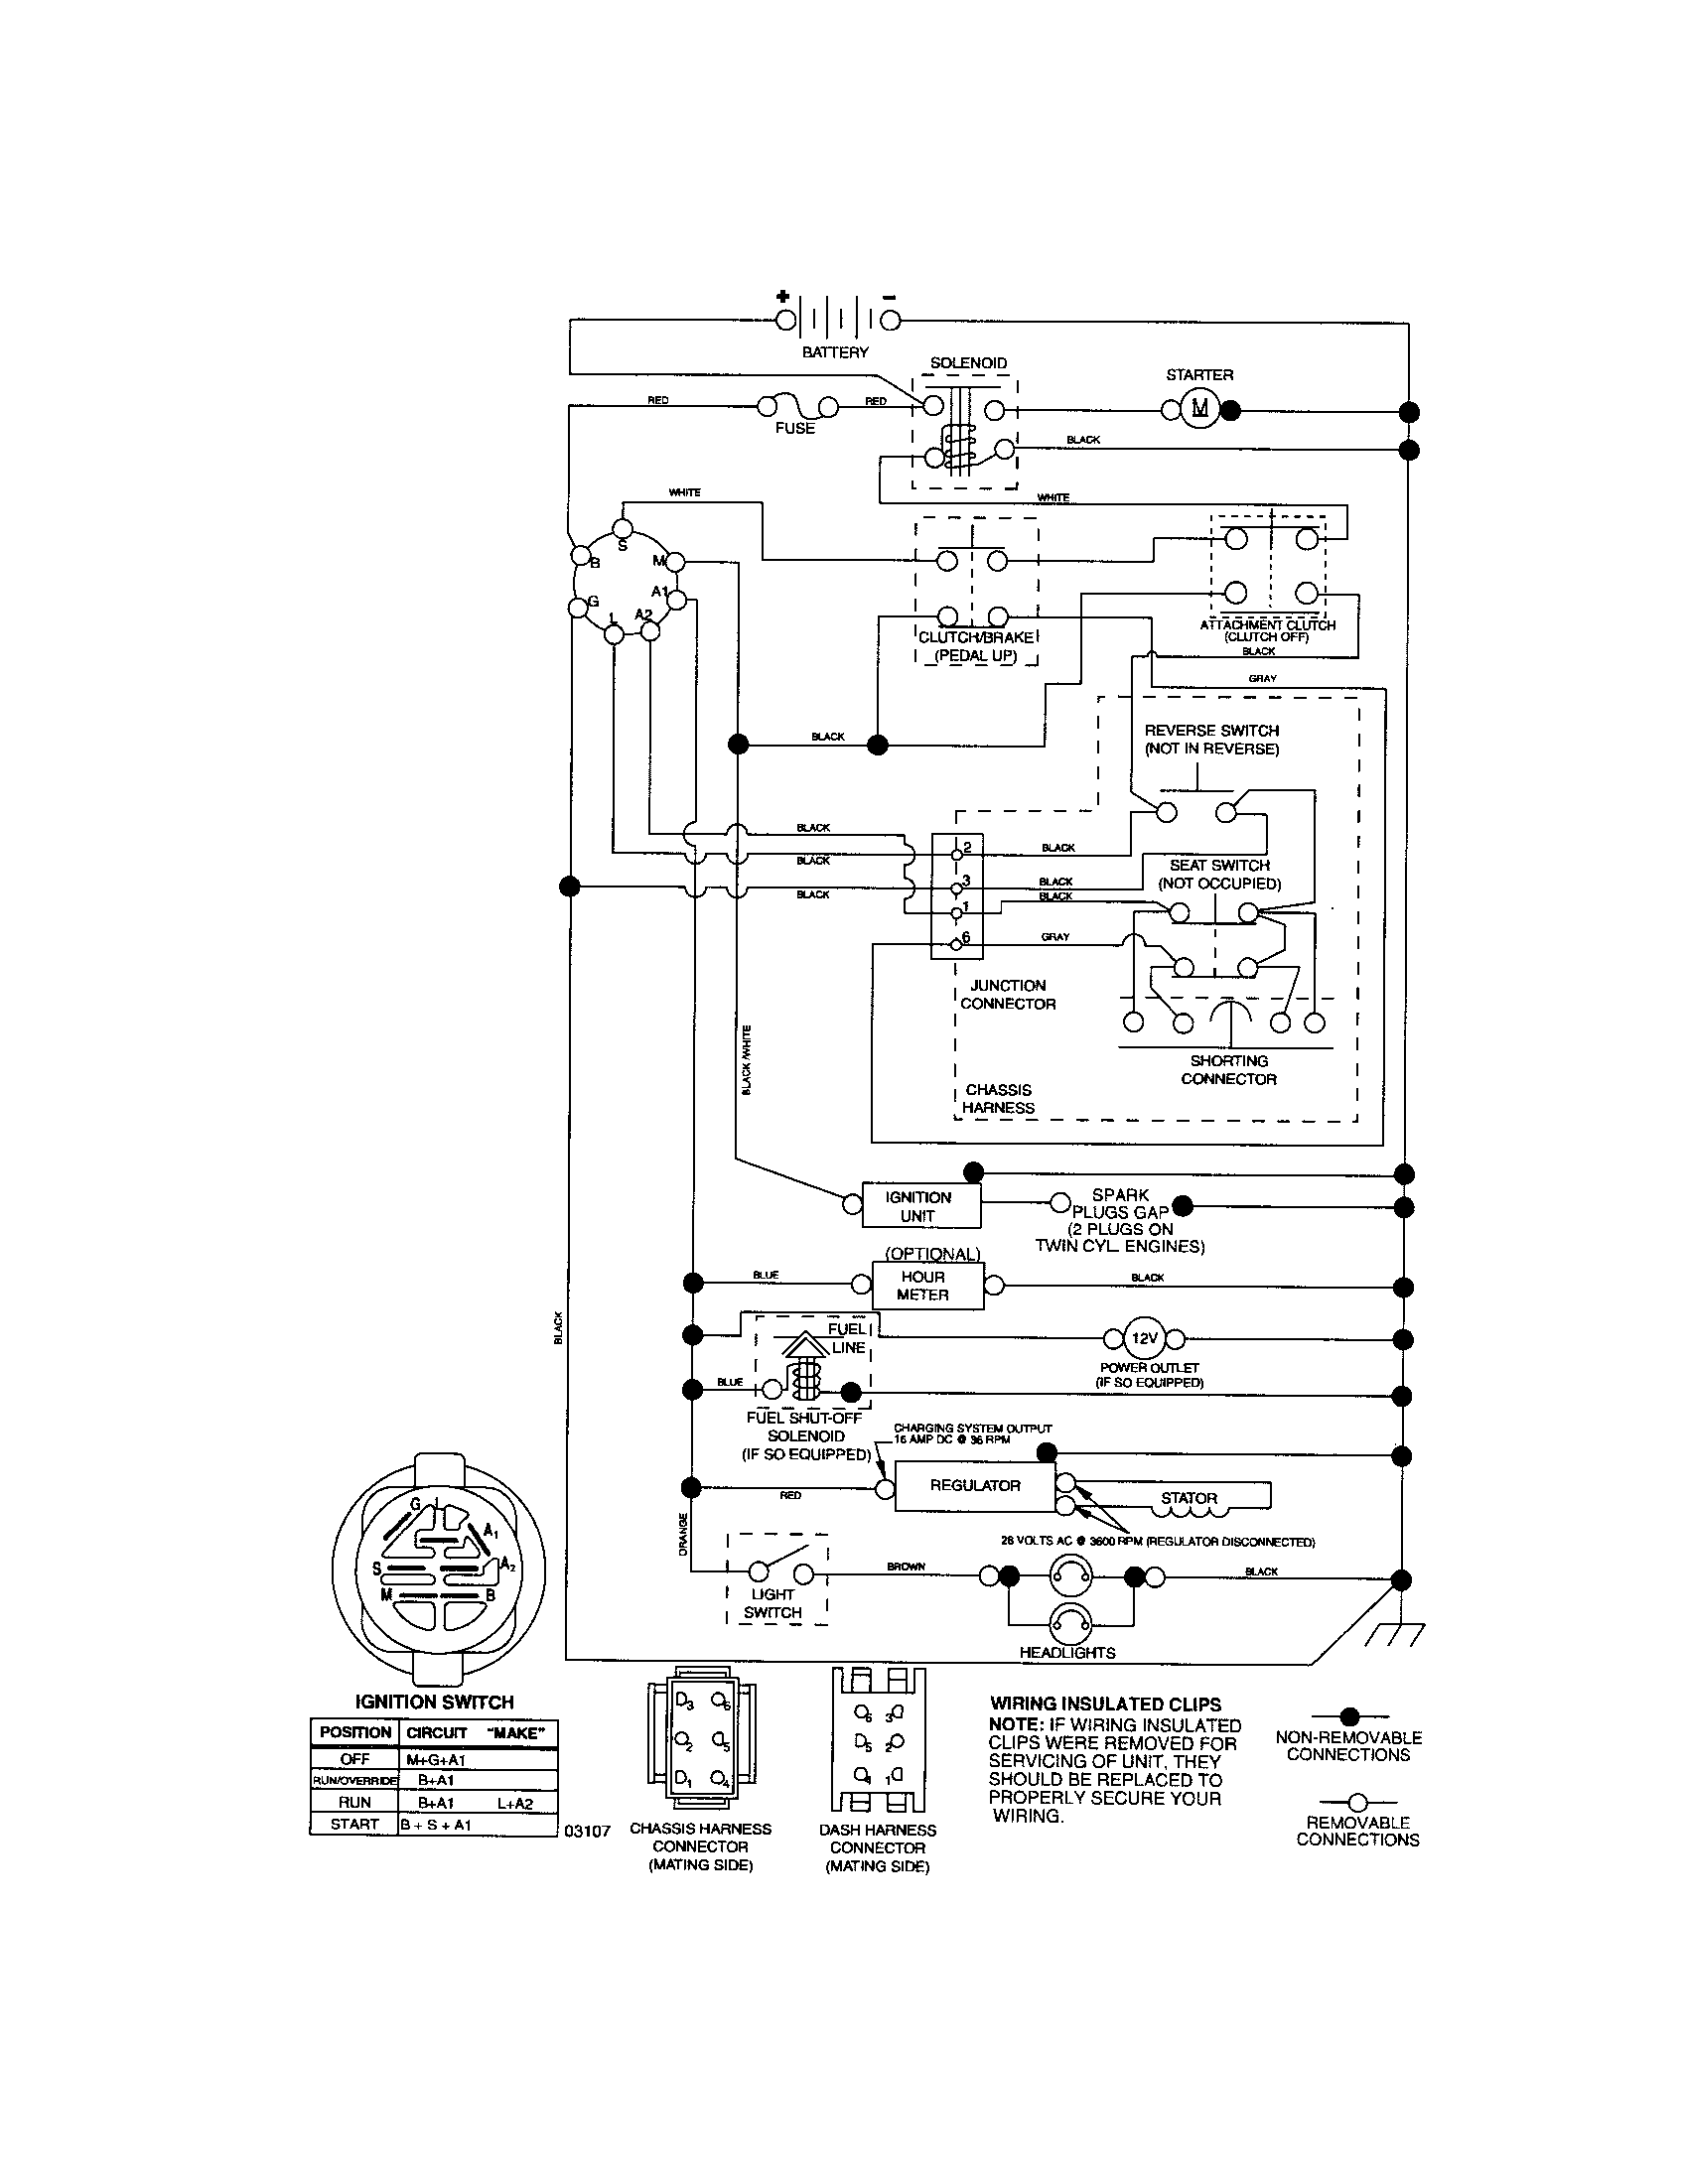 6V Battery Charger Circuit Diagram | 6 Volt Tractor Charging System Wiring Diagram Wiring Library